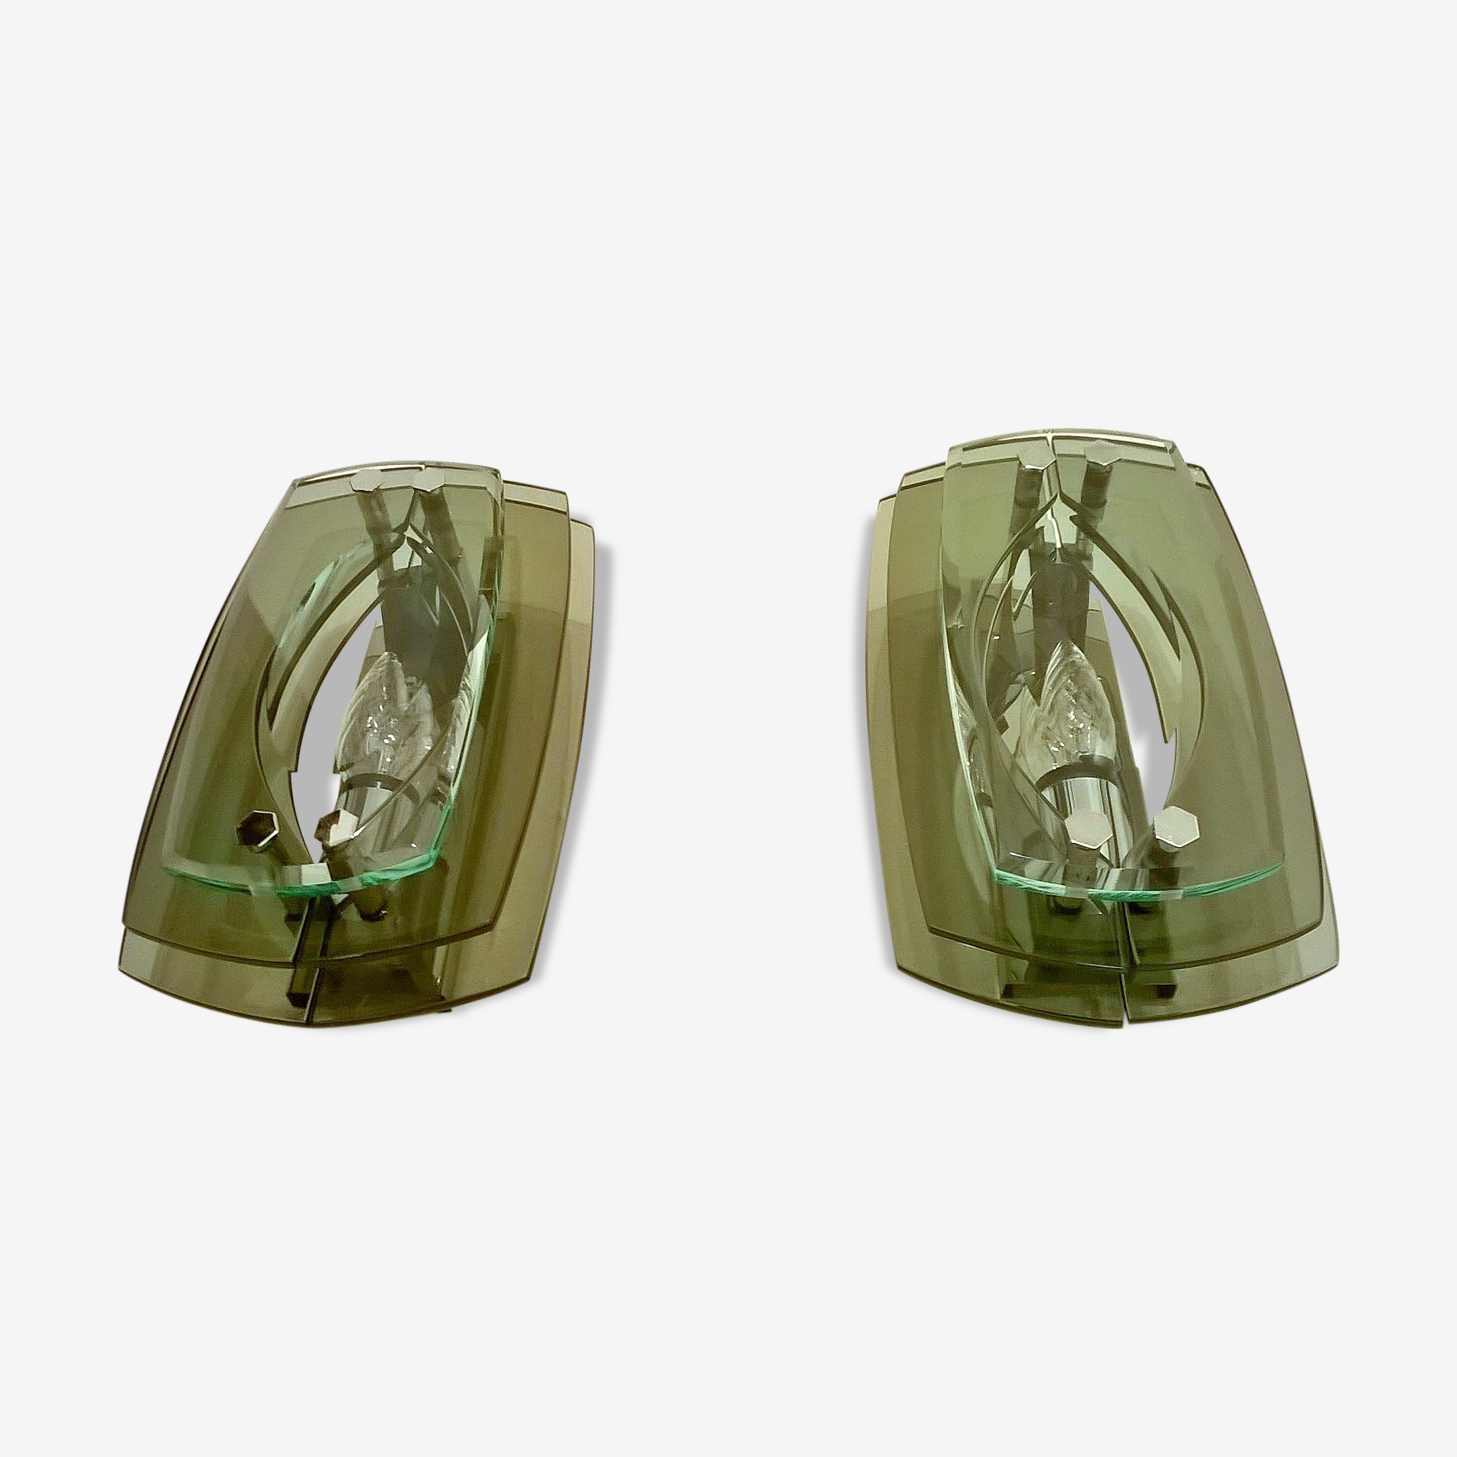 Set of 2 wall sconces glass Italy 1960 s